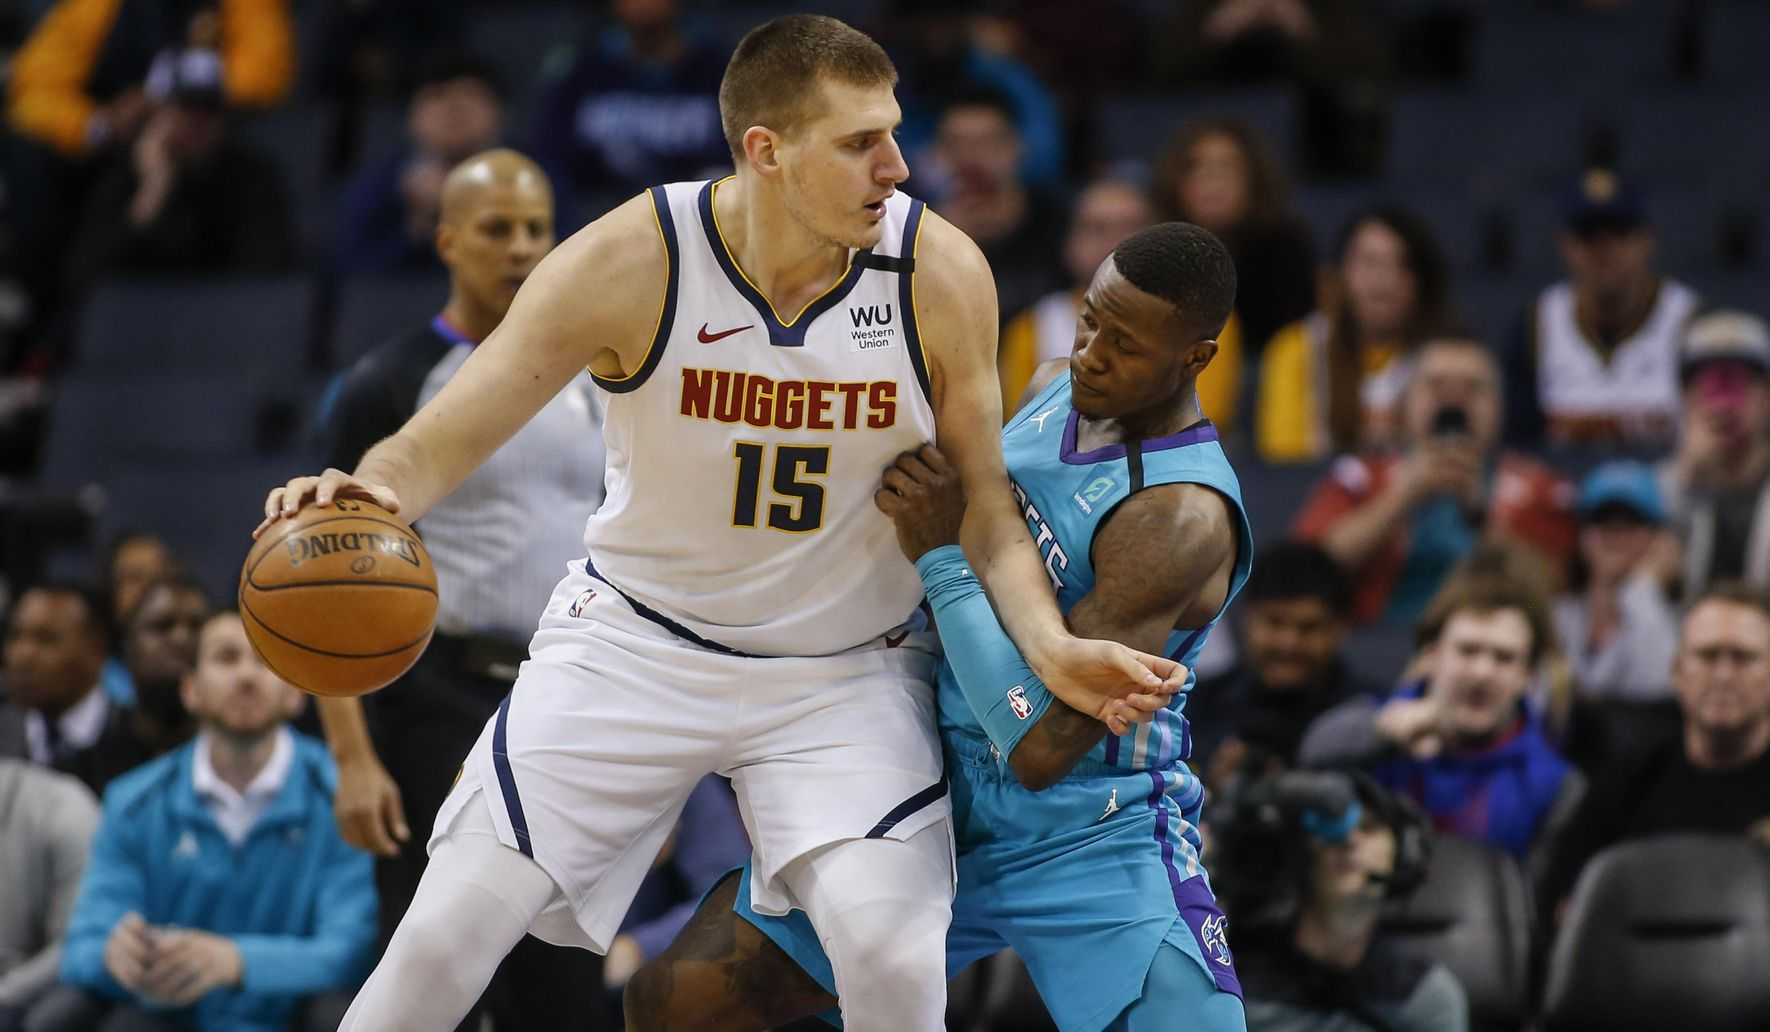 Nuggets_hornets_basketball_78880_c0-144-3456-2159_s1770x1032